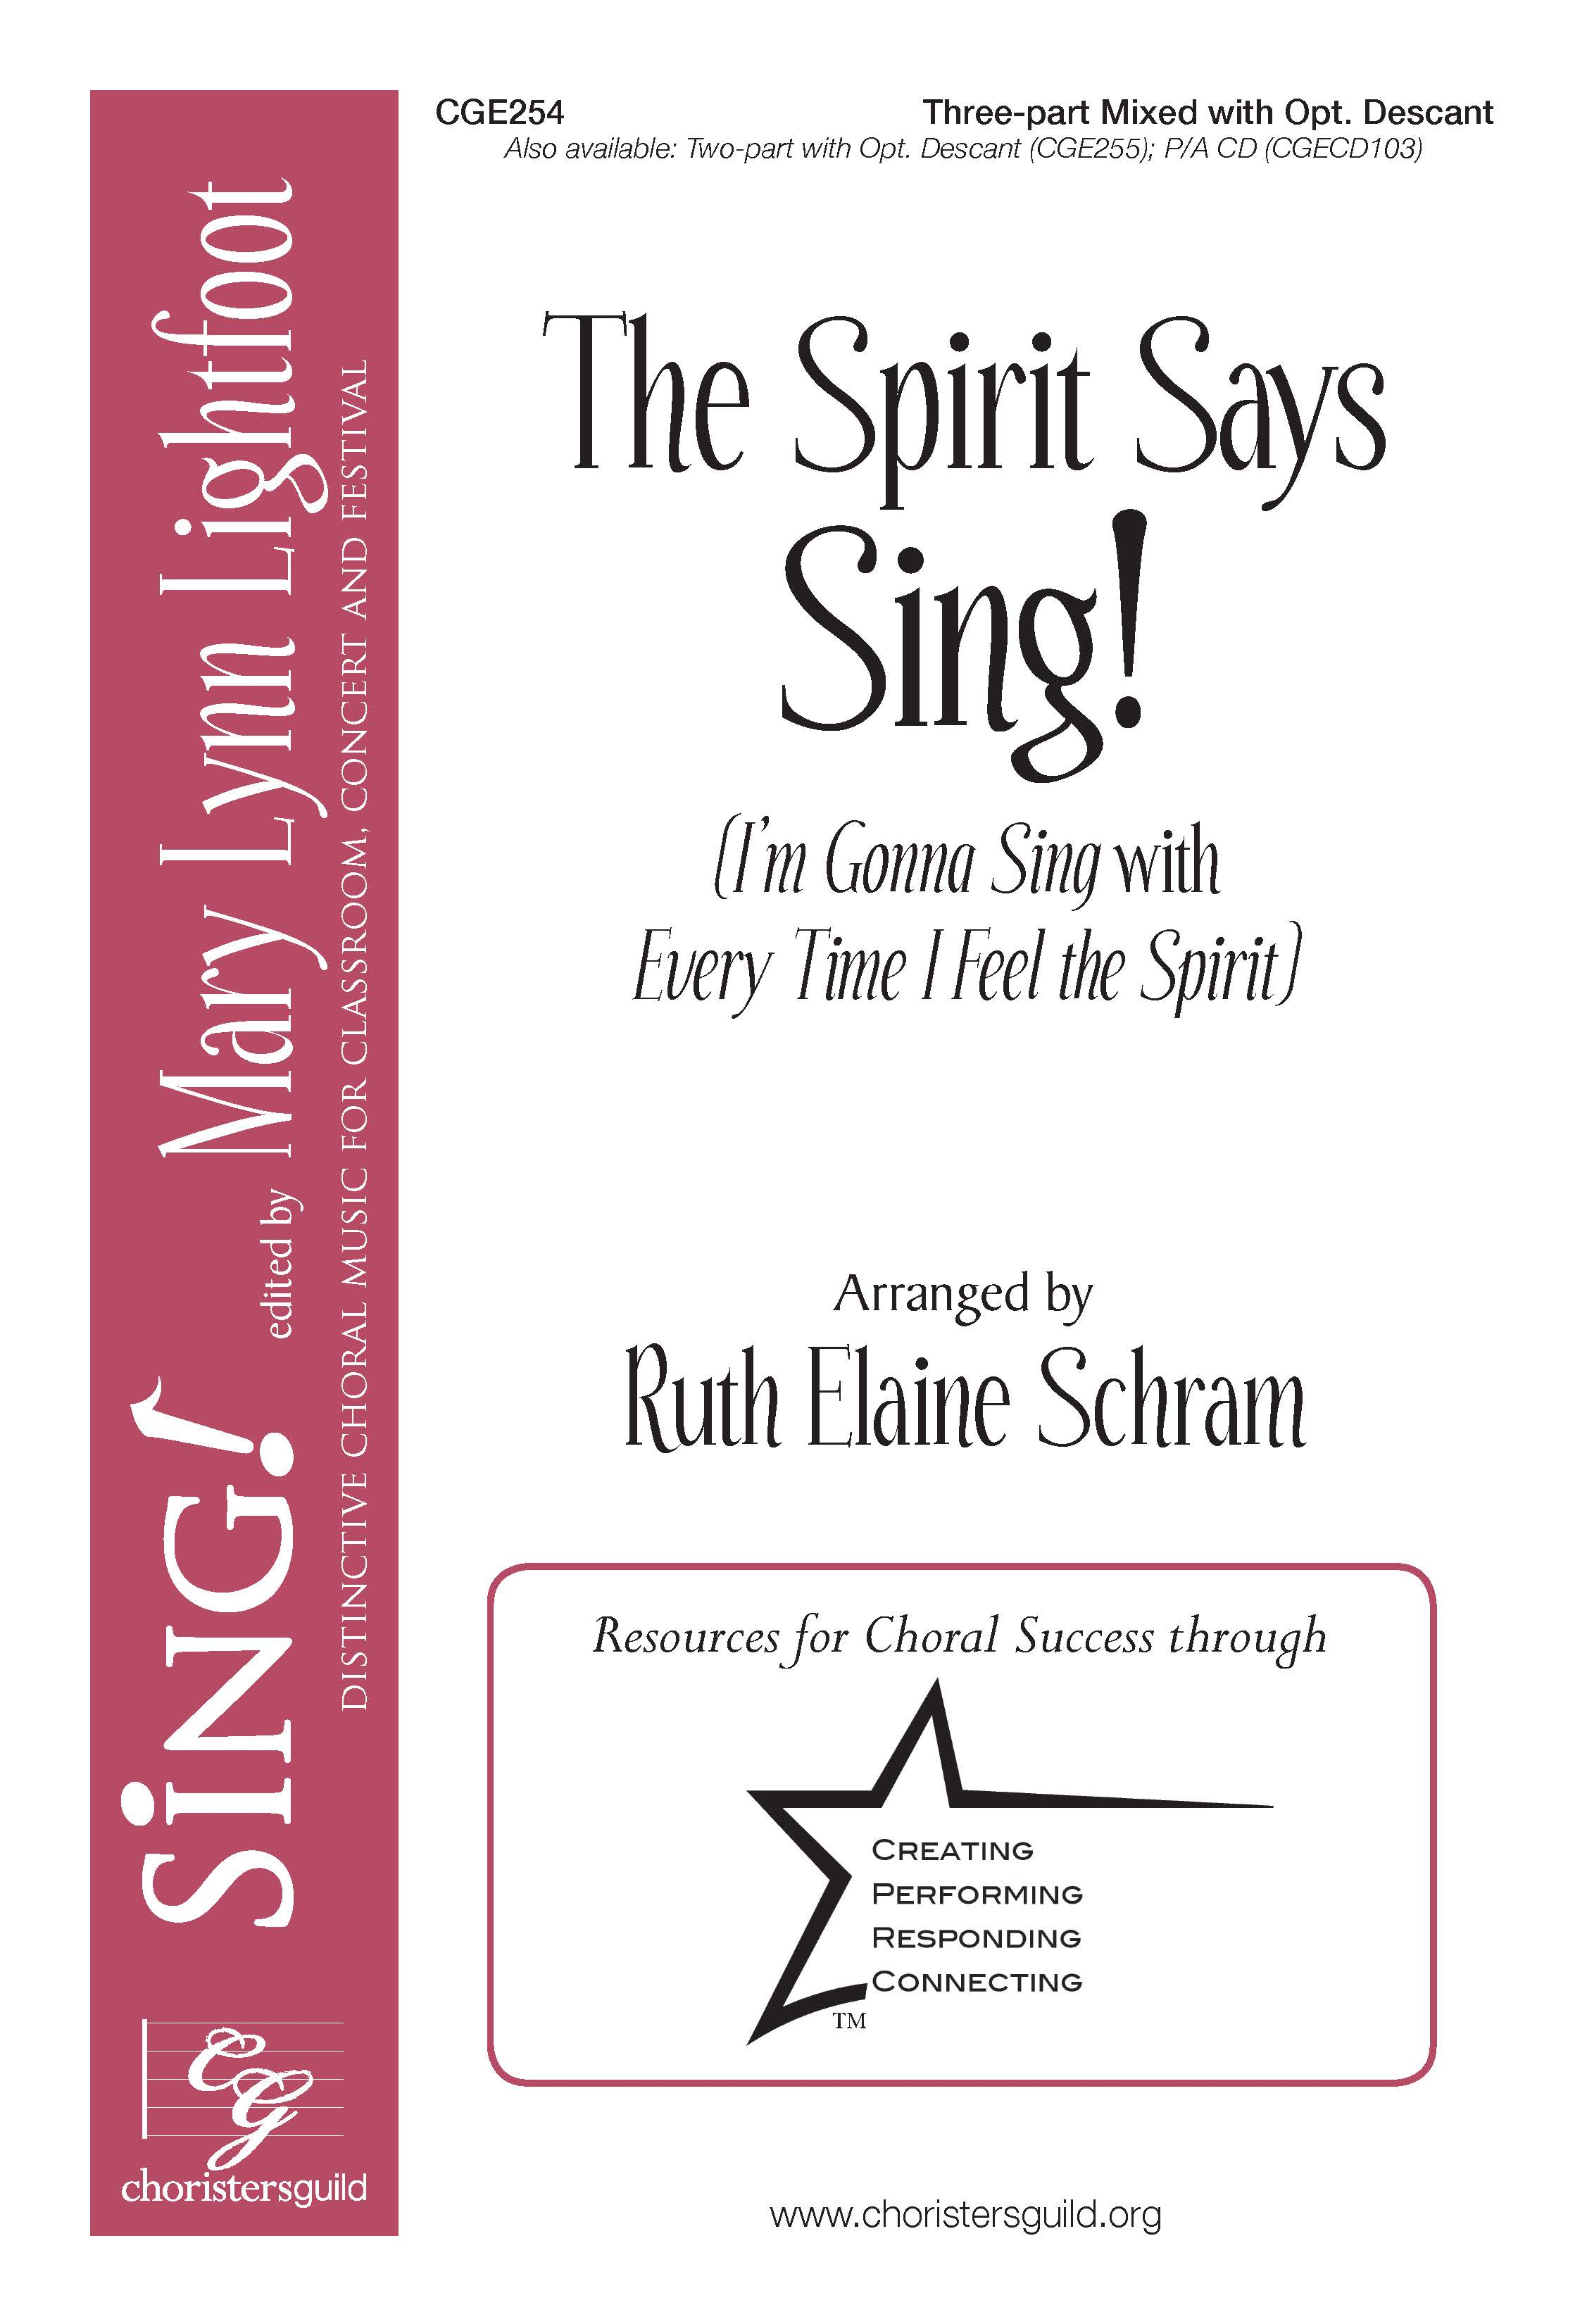 The Spirit Says Sing! Three-part Mixed